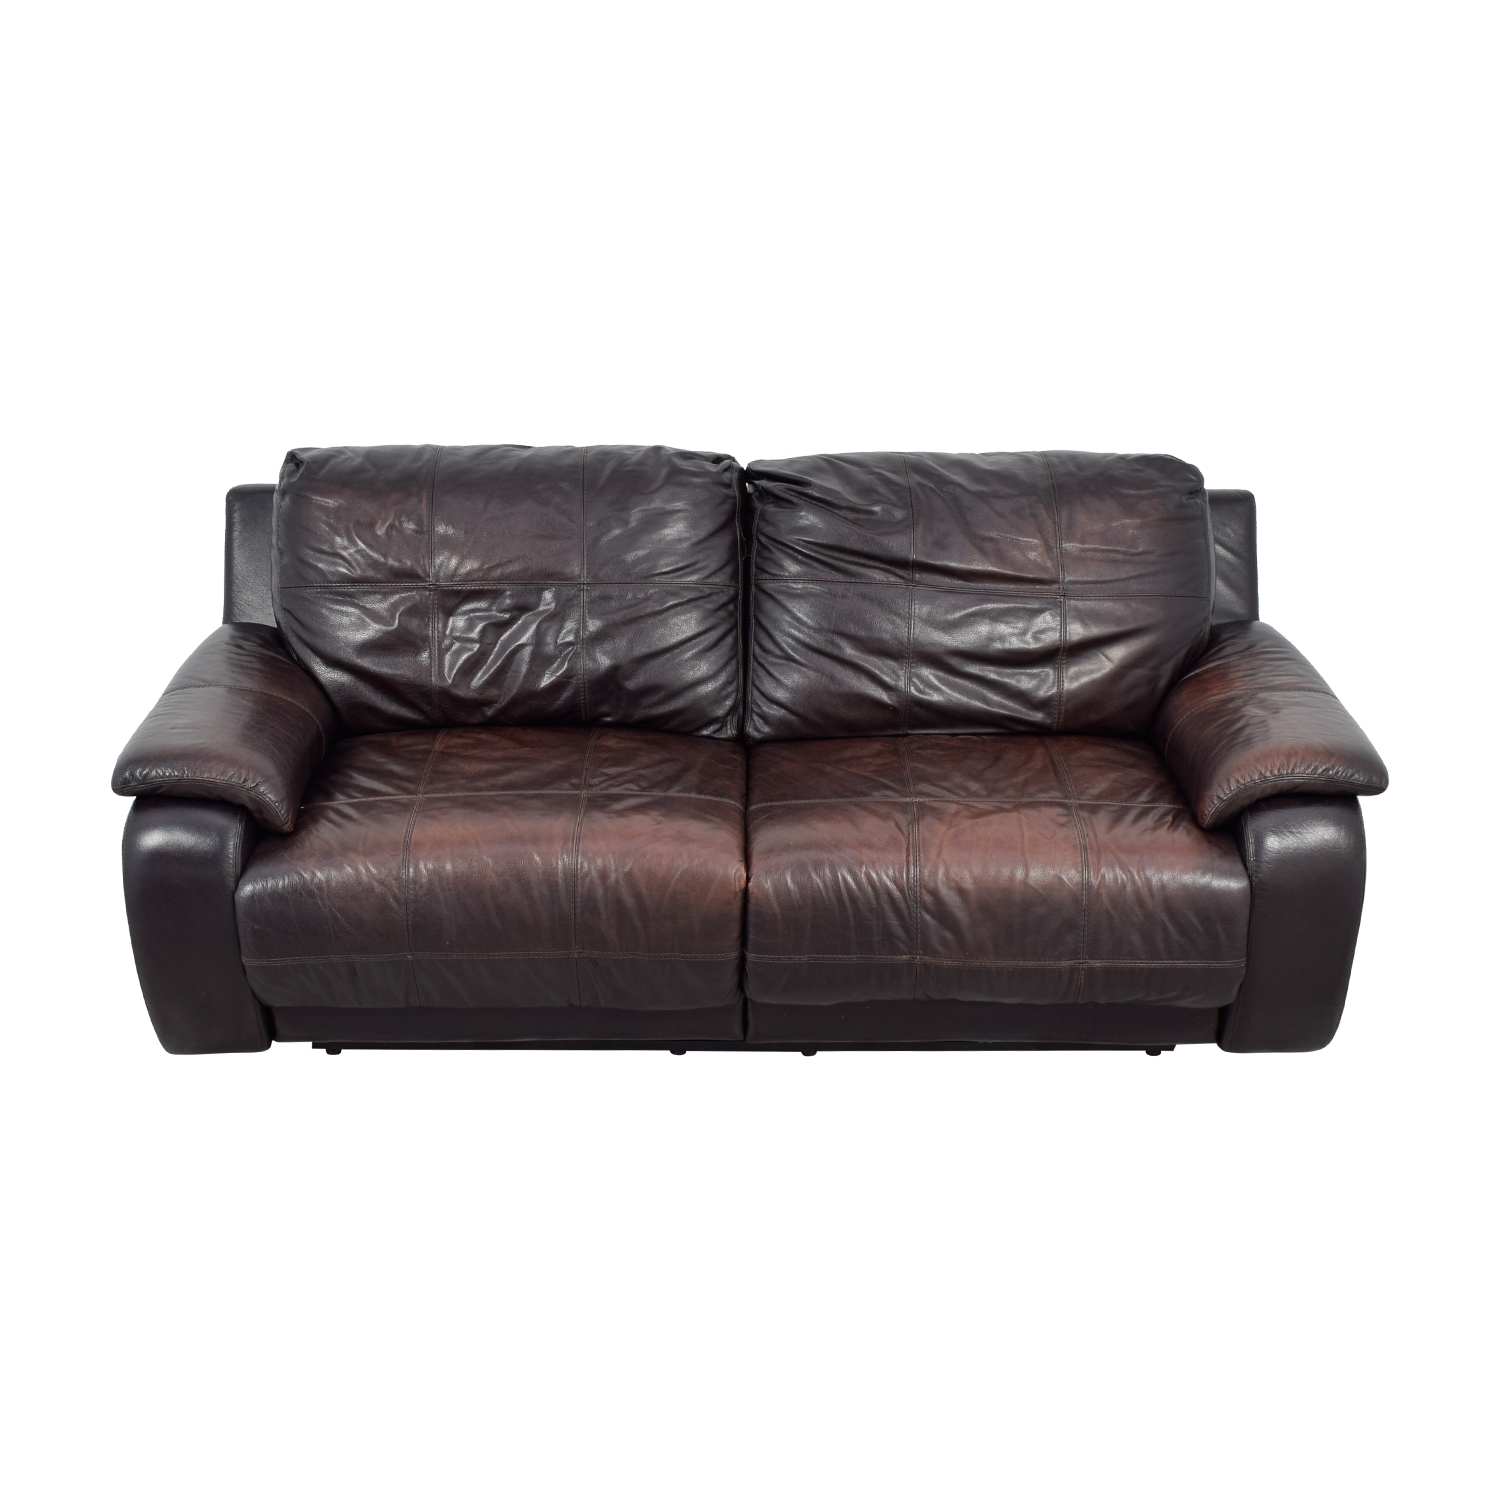 Raymour & Flanigan Brown Leather Power Recliner Sofa Raymour & Flanigan